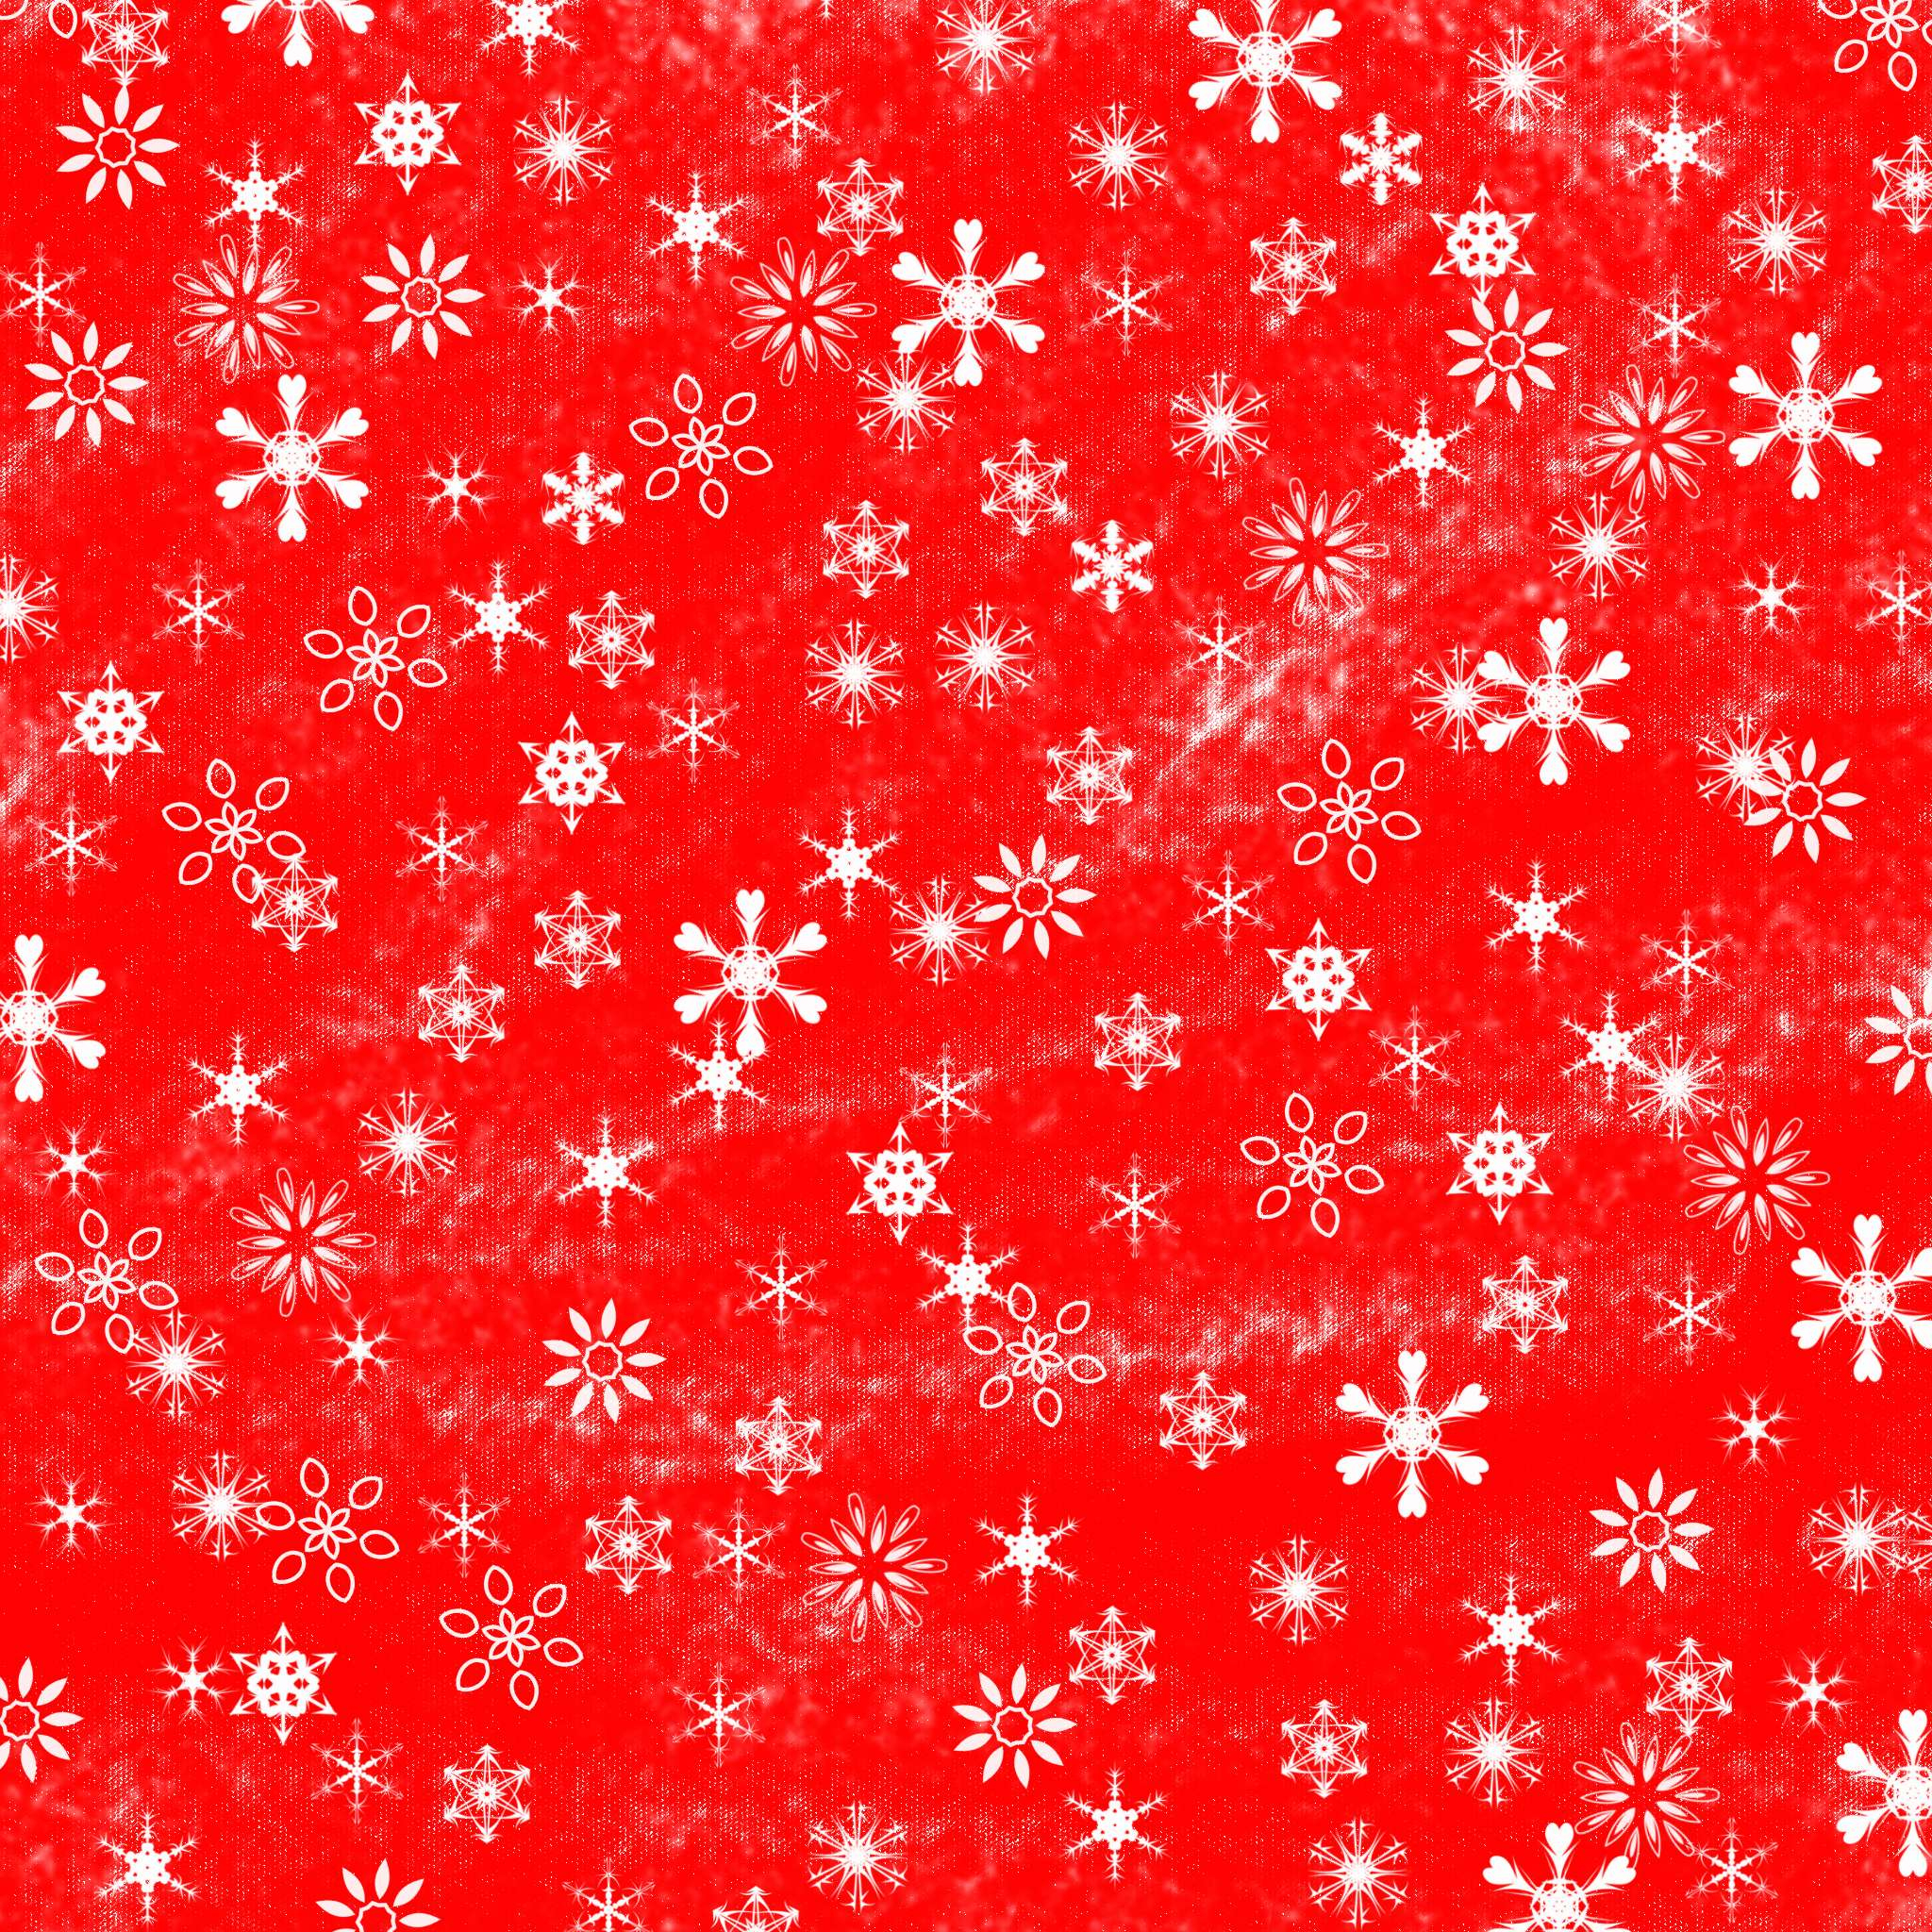 Free Printable Christmas Backgrounds – Festival Collections - Free Printable Christmas Backgrounds